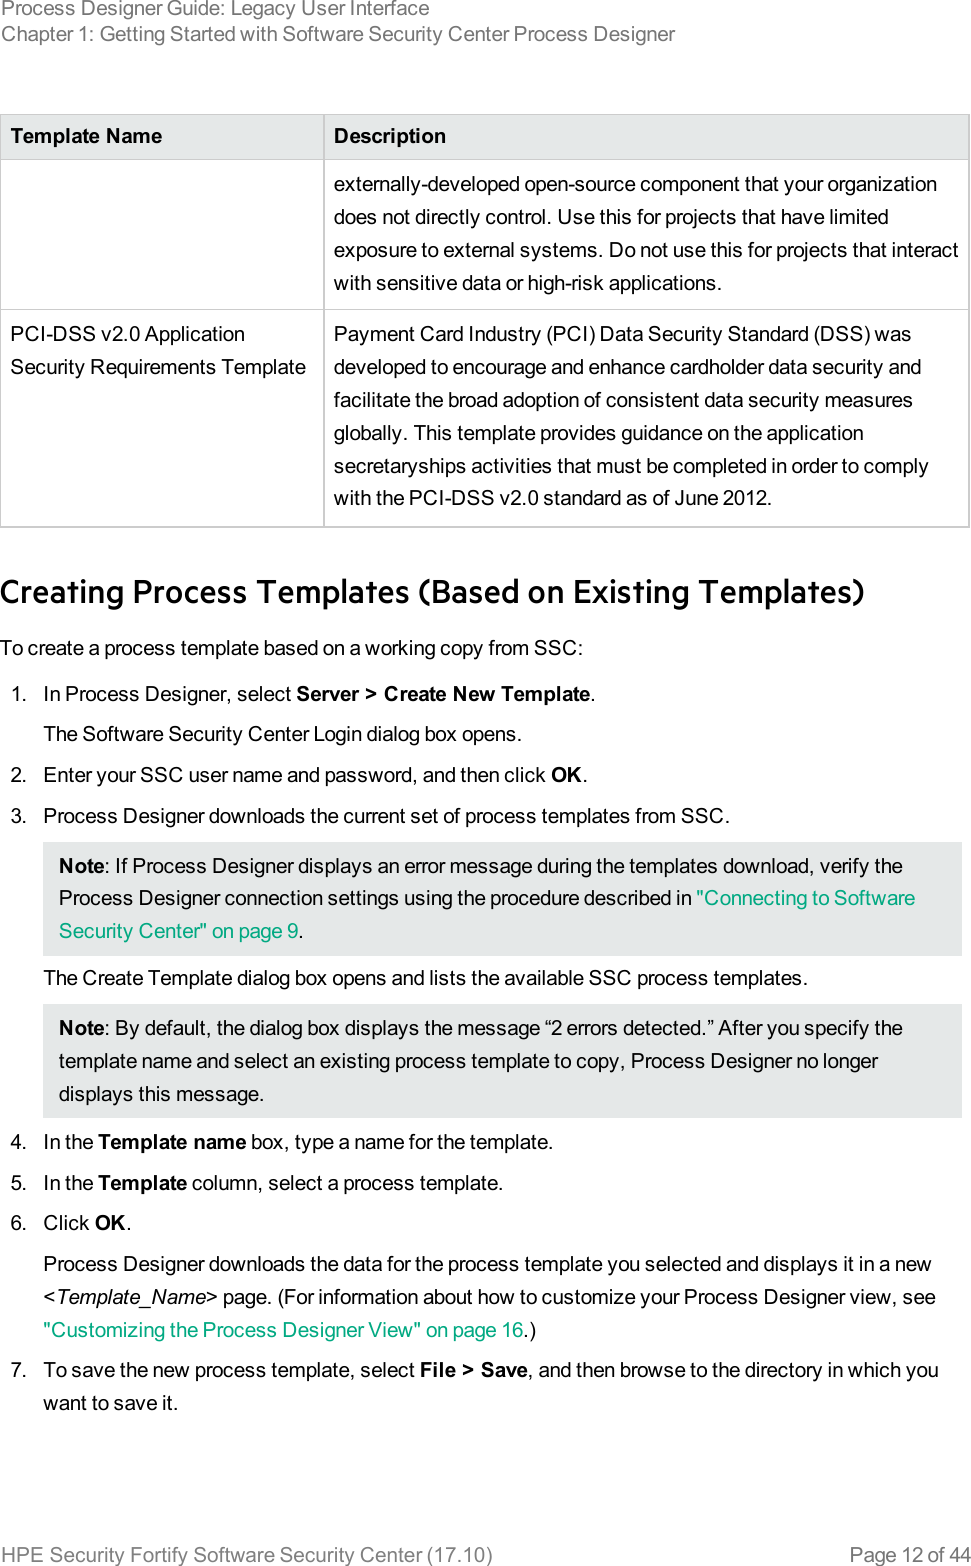 HPE Security Fortify Software Center Process Designer Guide